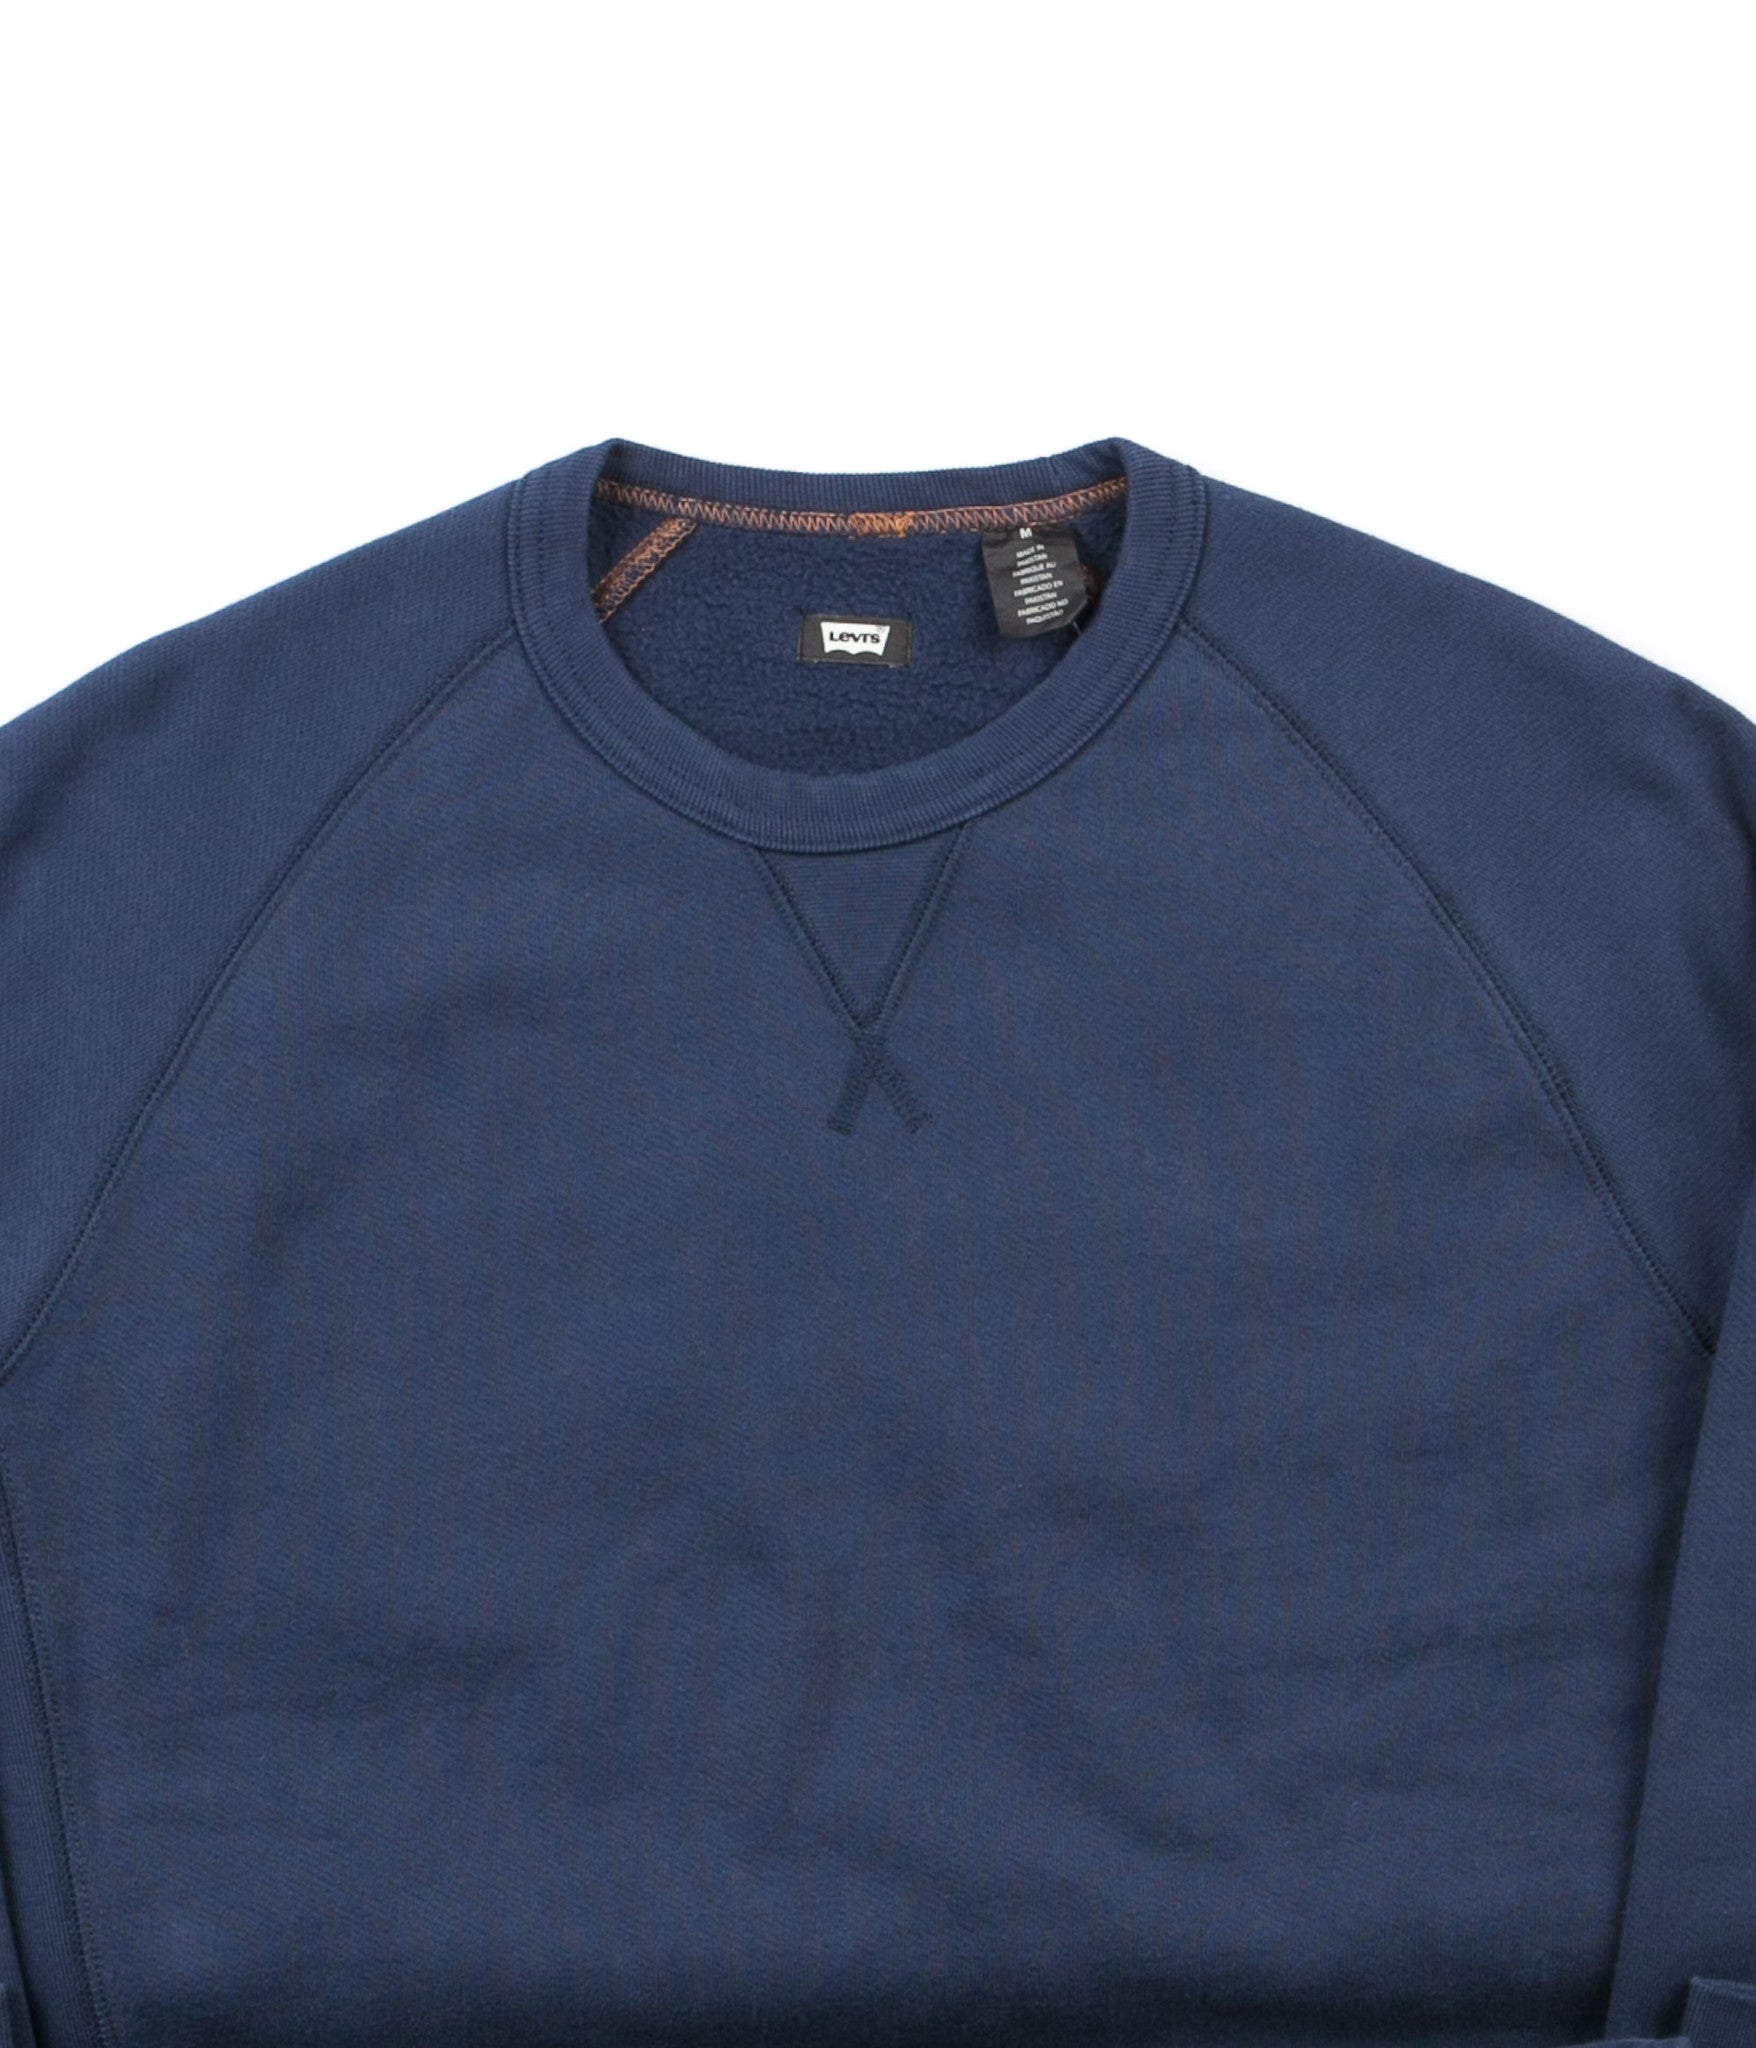 Levi's Skate Crewneck Sweatshirt - Dress Blues